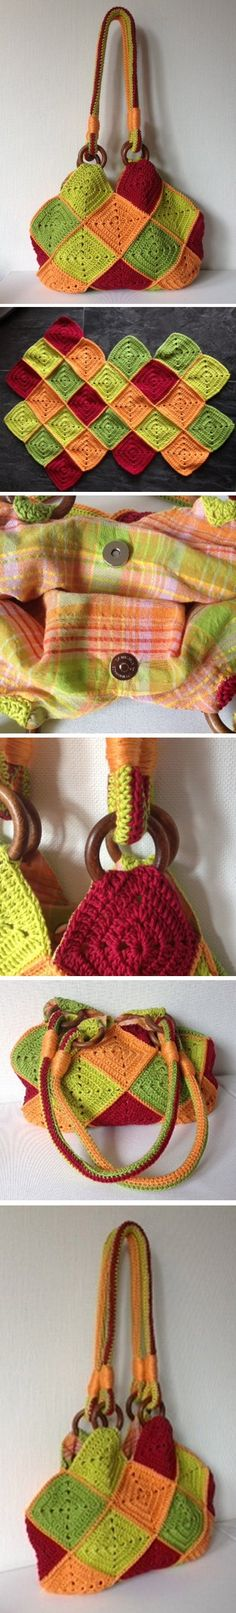 Square bag - *Inspiration* - Crochet - Work up a crochet bag and then line it with matching fabric on the inside.